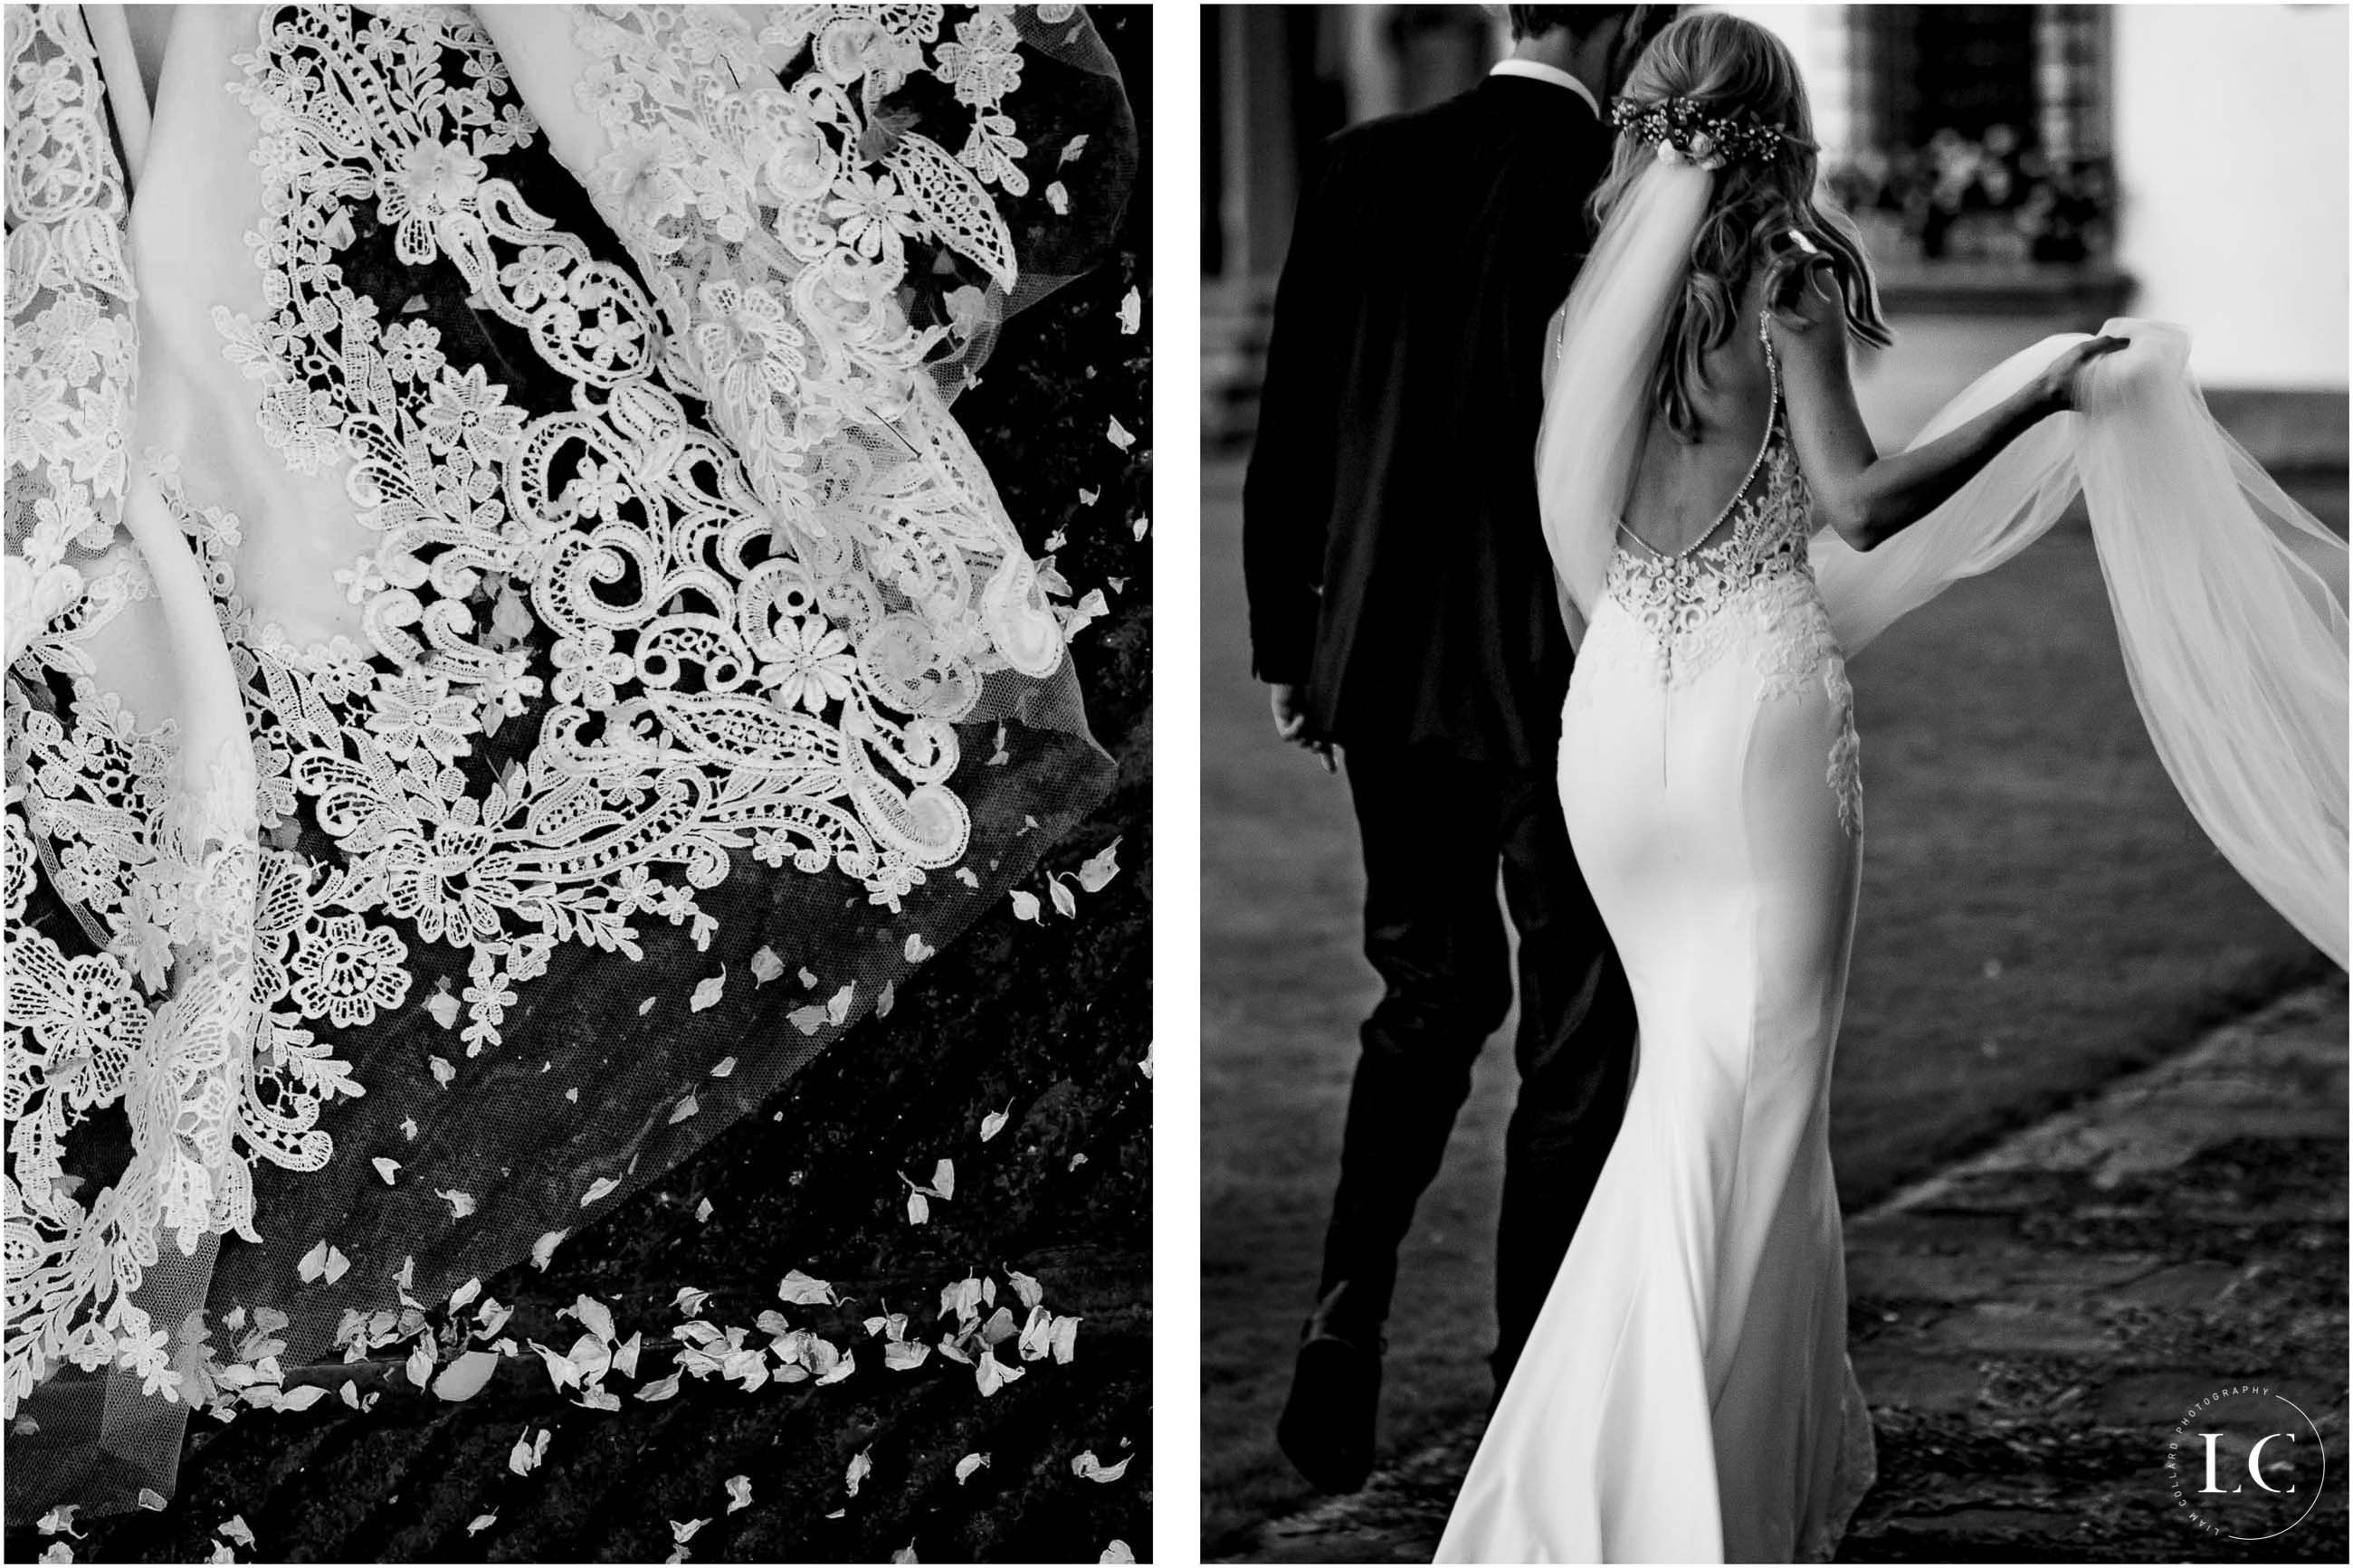 Collage of bride and groom